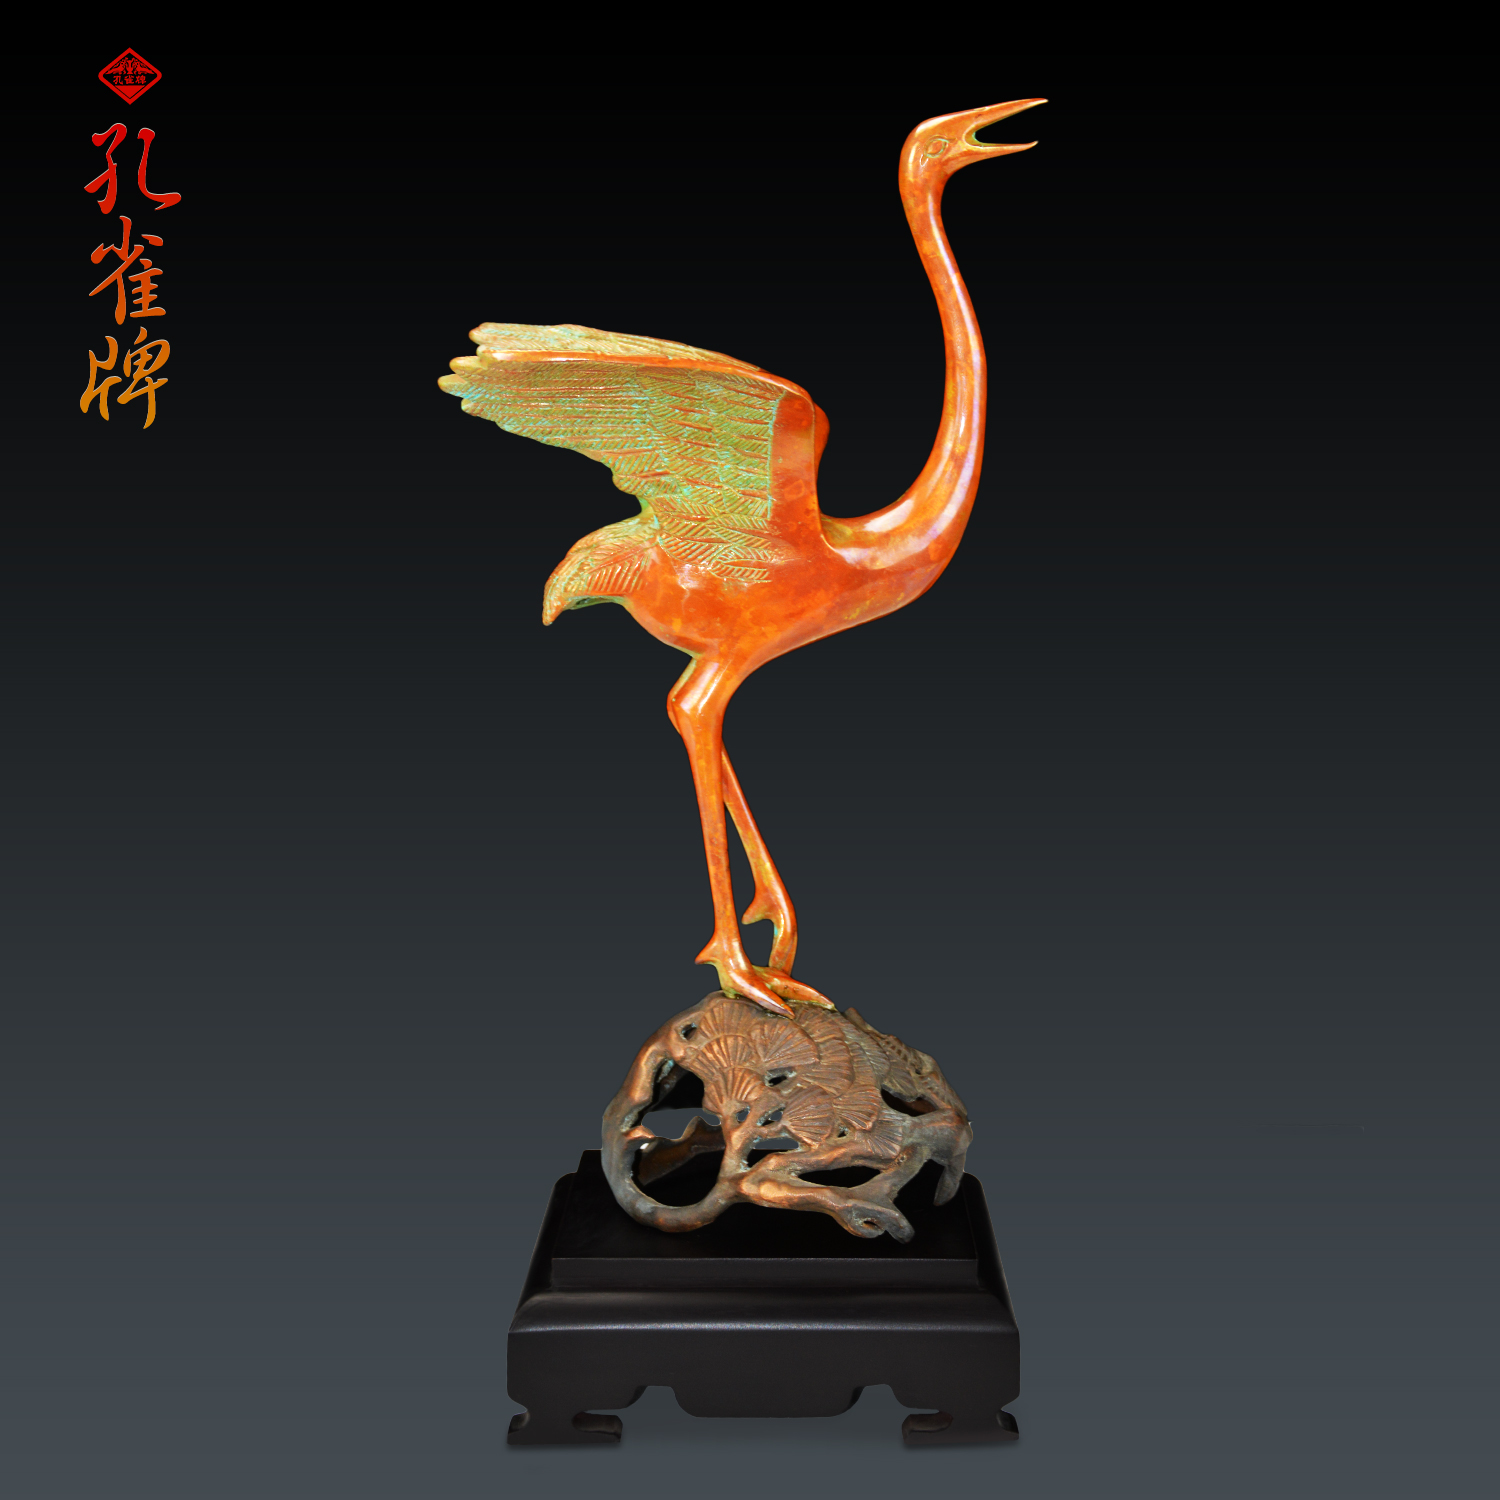 Peacock brand heming dance variegated copper copper ornaments metal crafts office feng shui bronze handmade